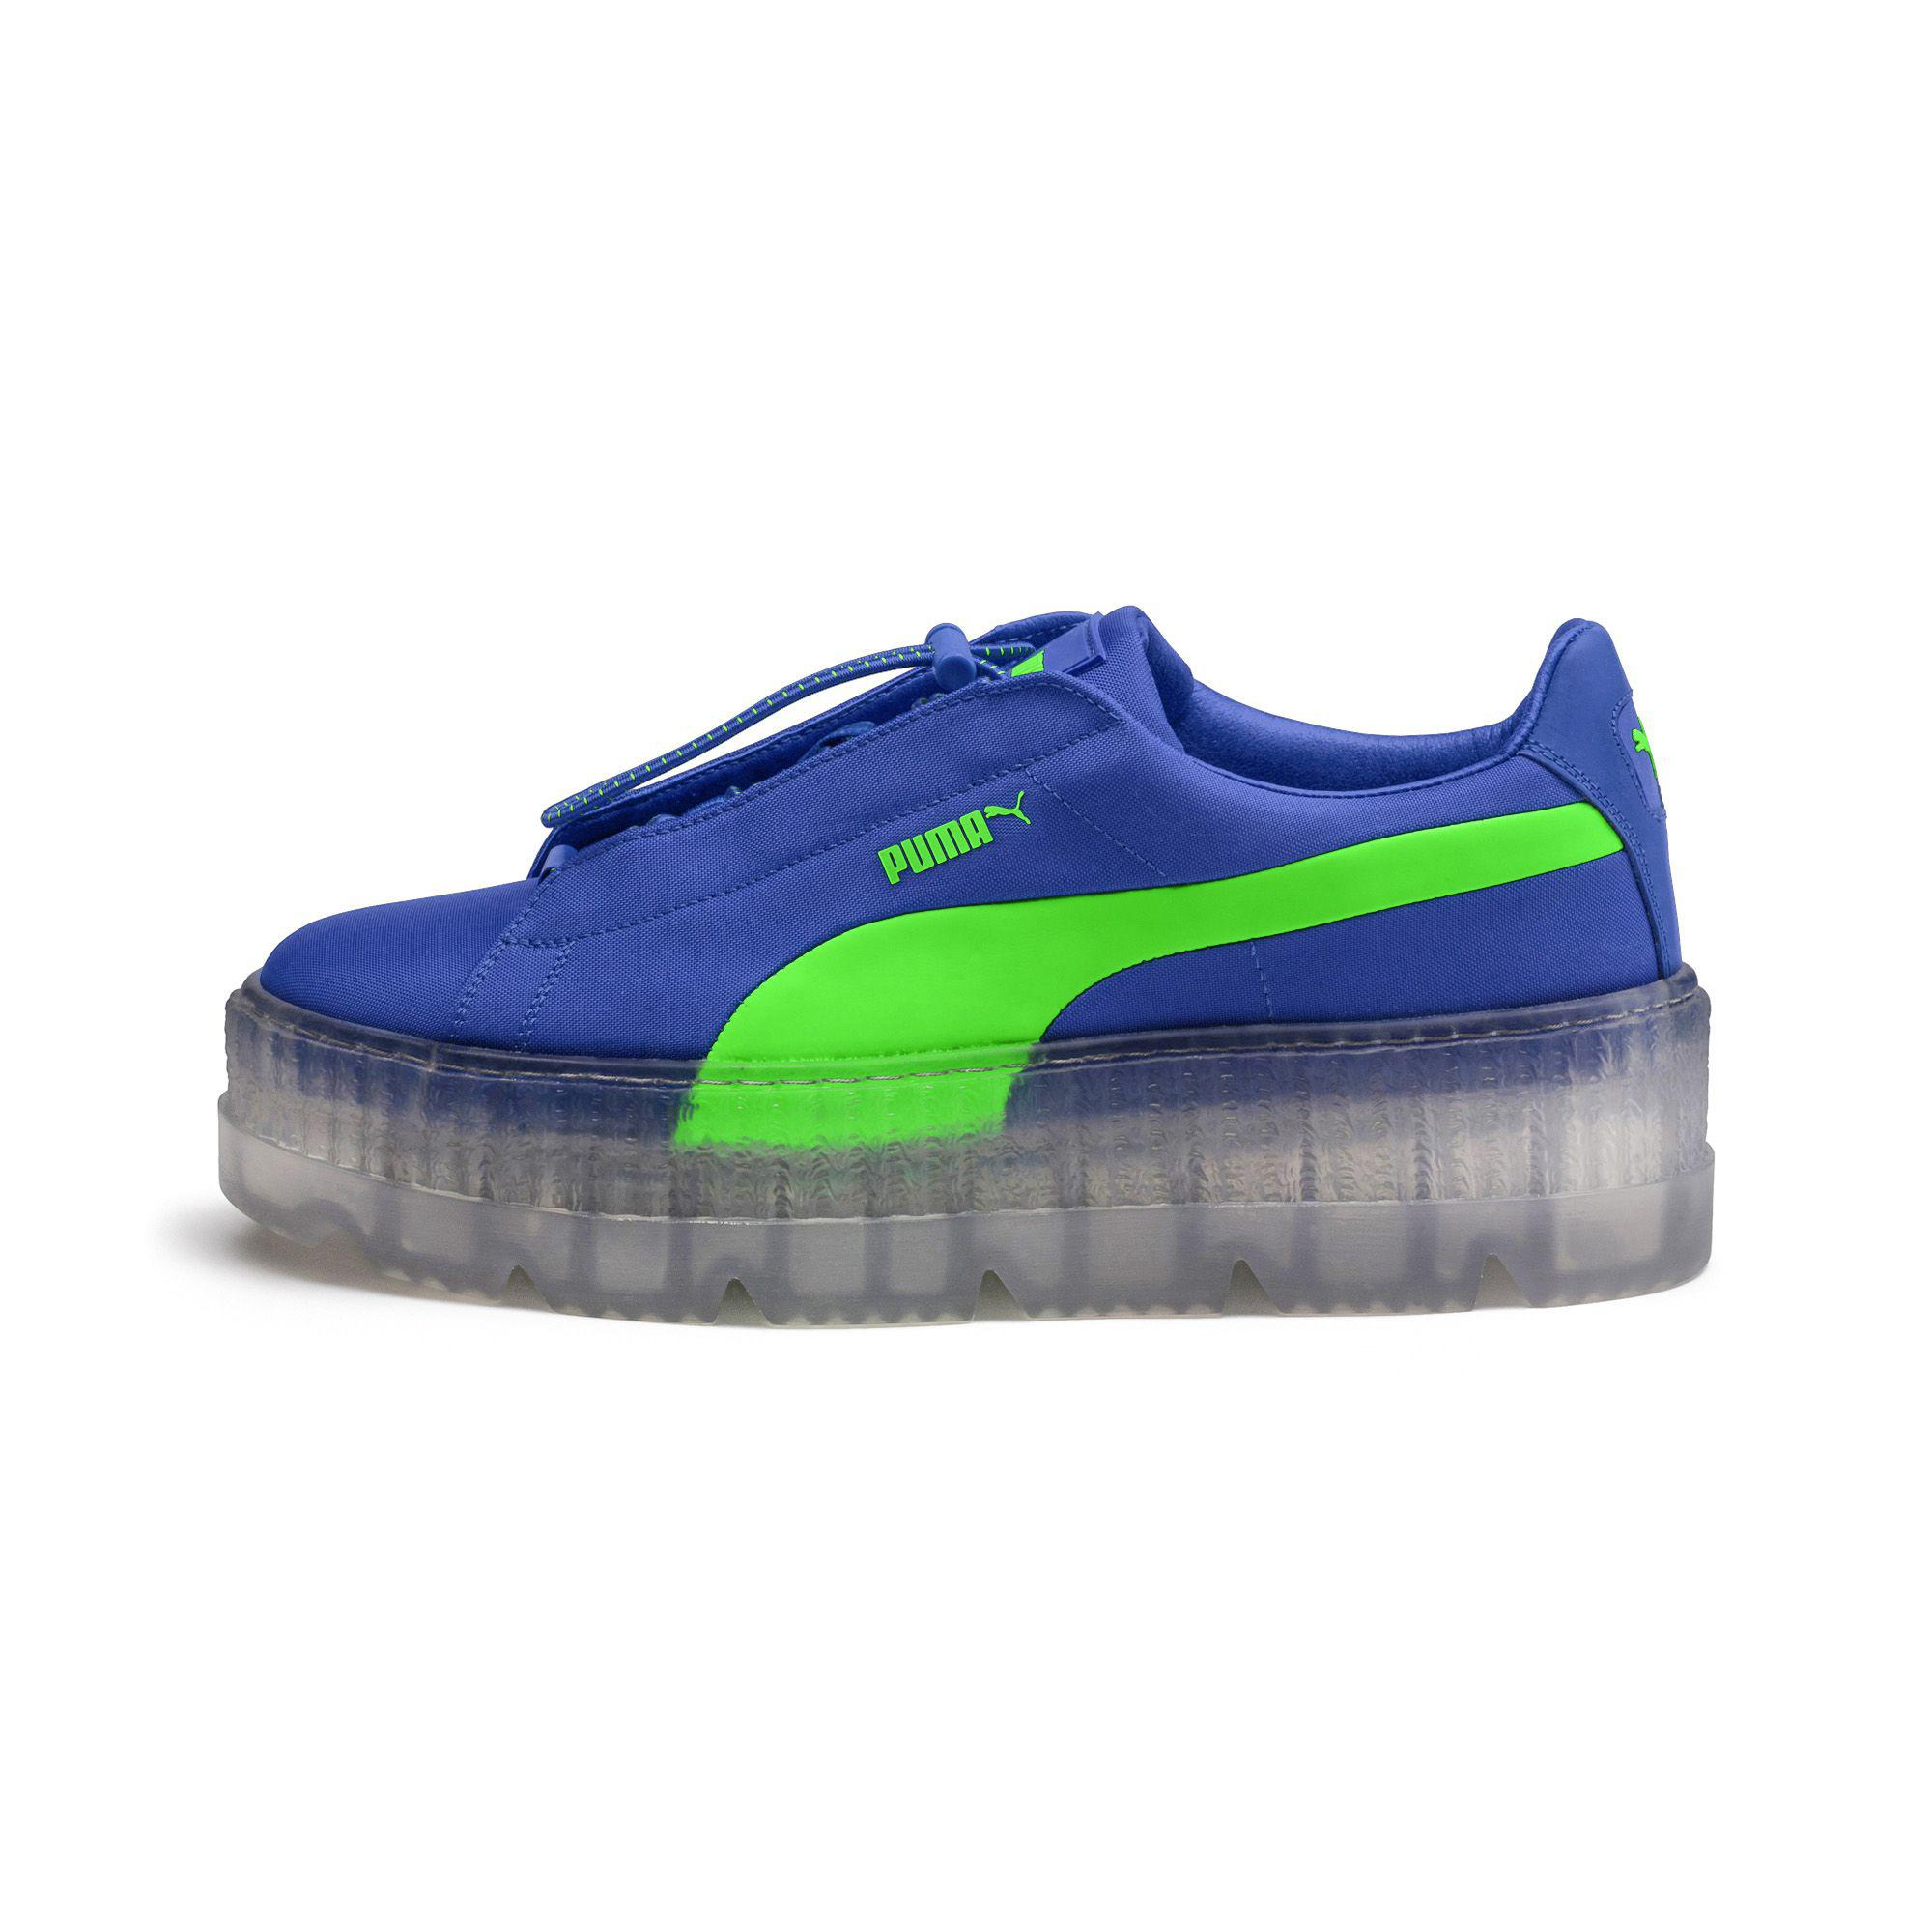 reputable site 036ff 0983f Blue Fenty Unisex Cleated Creeper Surf